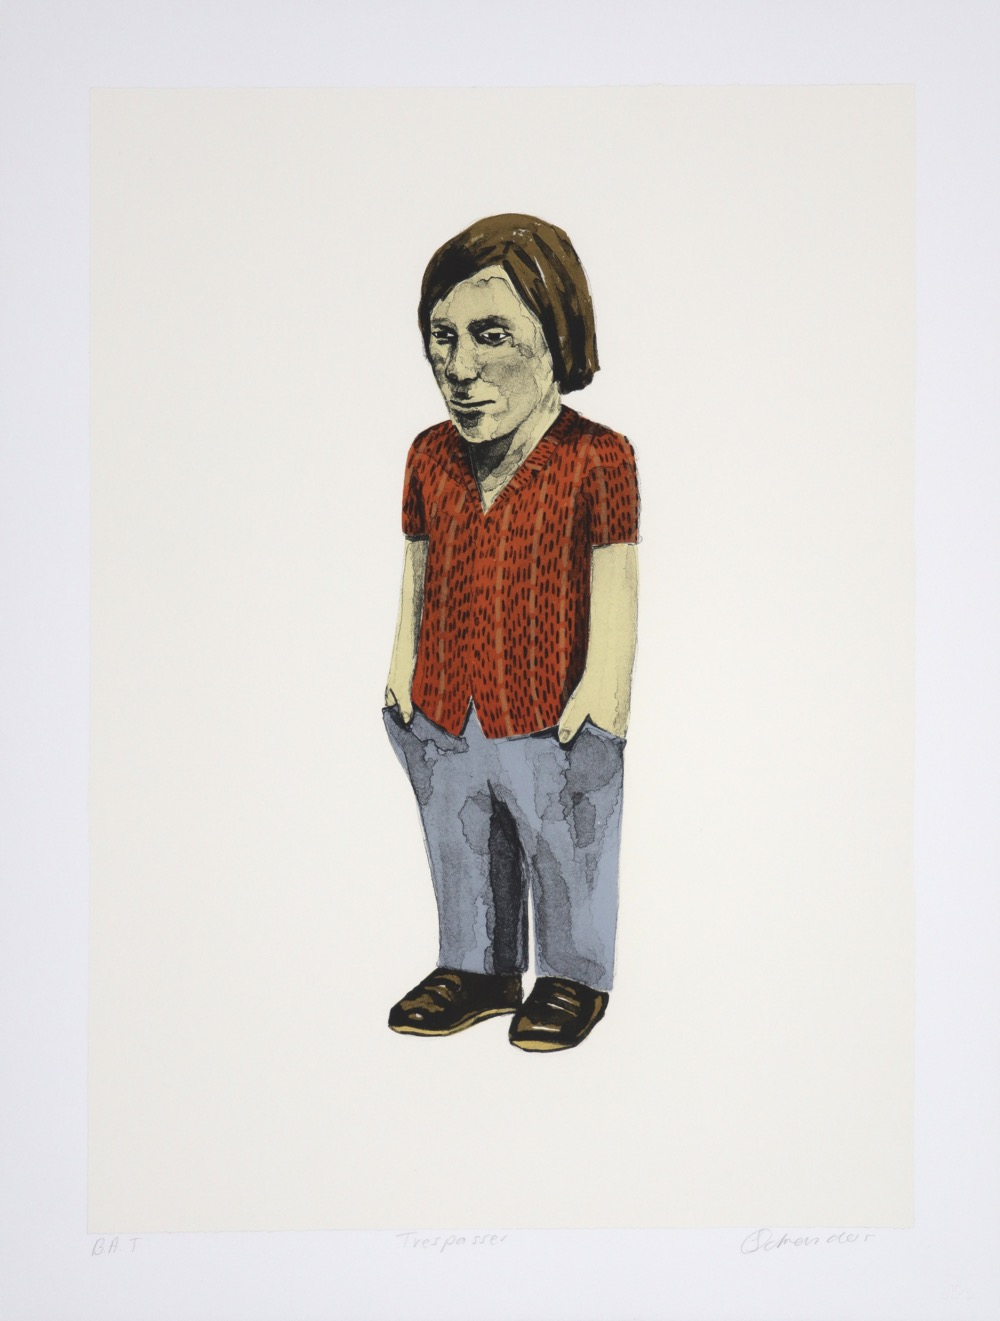 Female figure standing with her hands in her pockets, wearing a red shirt and blue trousers.